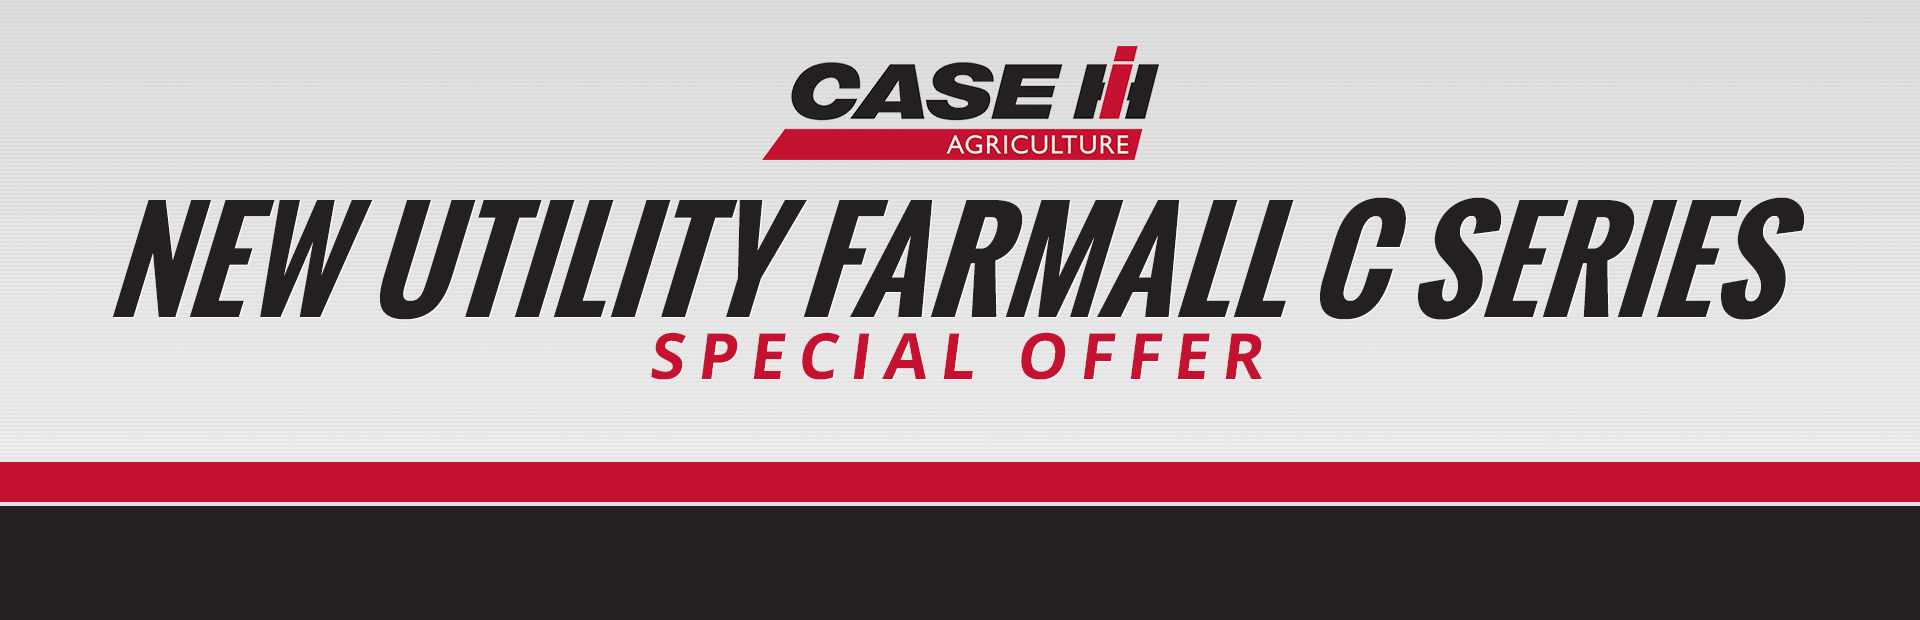 Case IH: New Utility Farmall C Series Special Offer